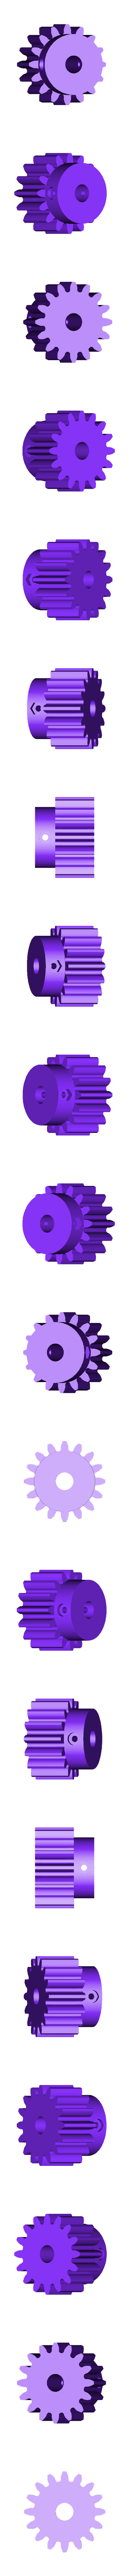 boltthrought.stl Download free STL file 4 ways to attach gears to the shaft (example gears) • Object to 3D print, LetsPrintYT